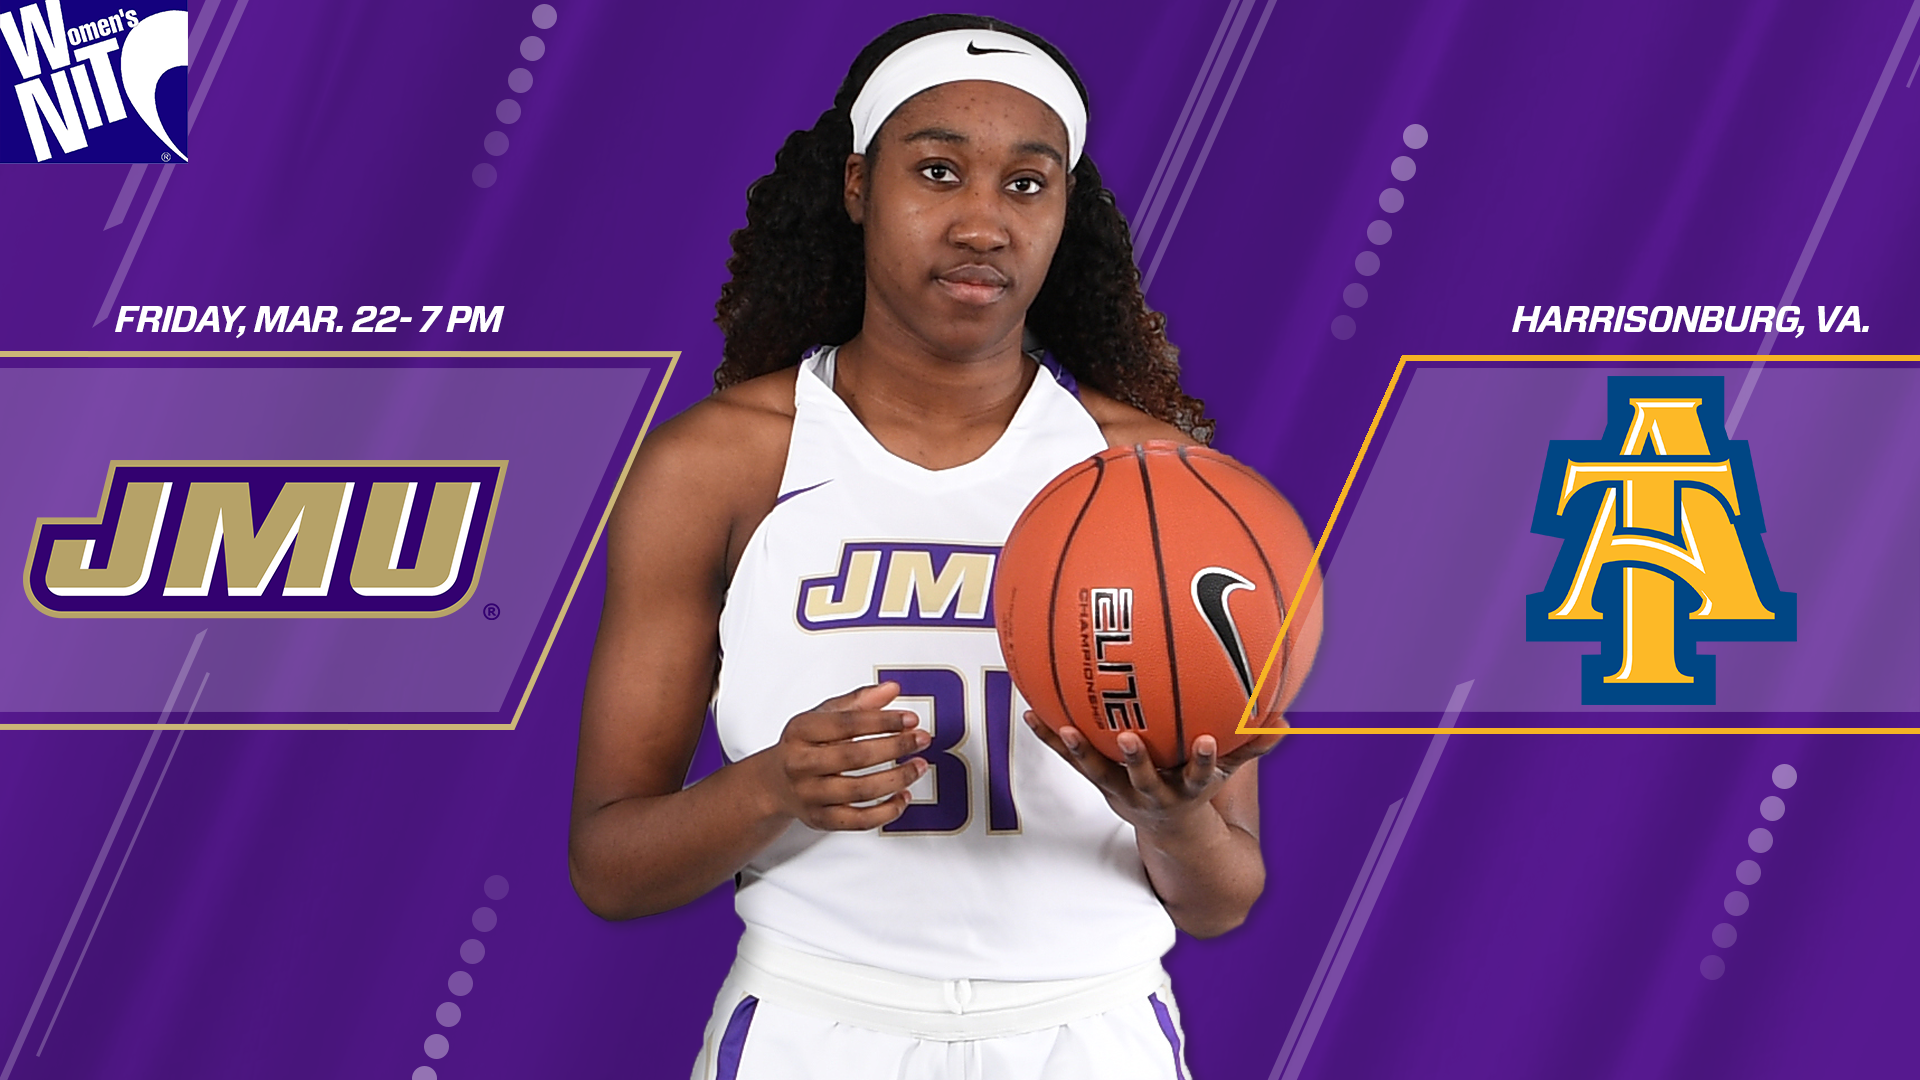 Women's Basketball: JMU Hosts Aggies In First Round of WNIT